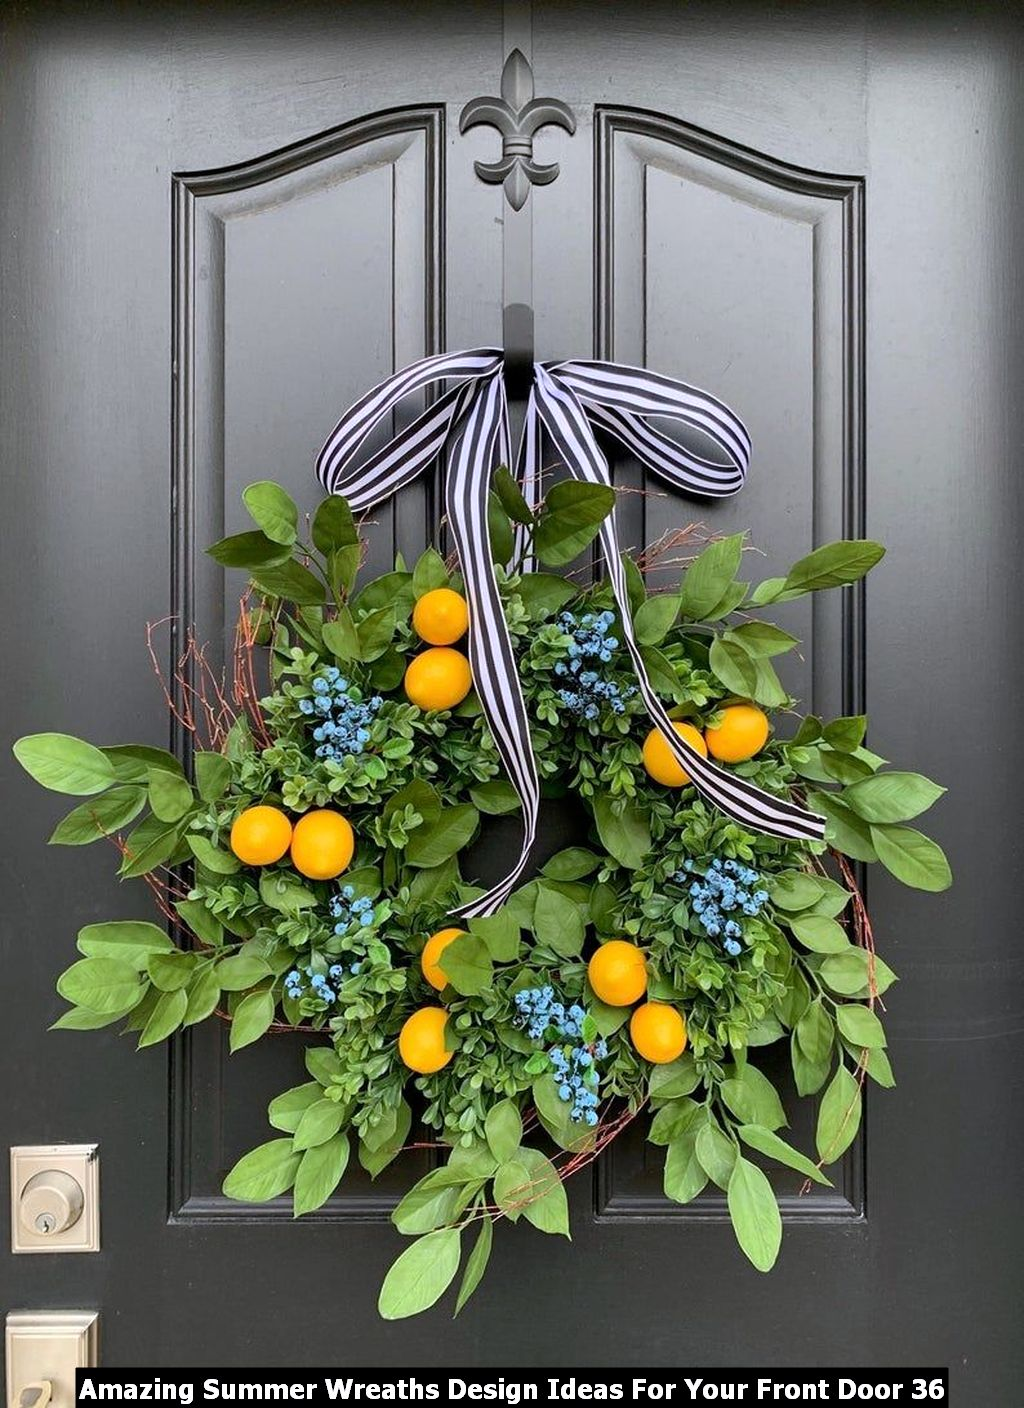 Amazing Summer Wreaths Design Ideas For Your Front Door 36